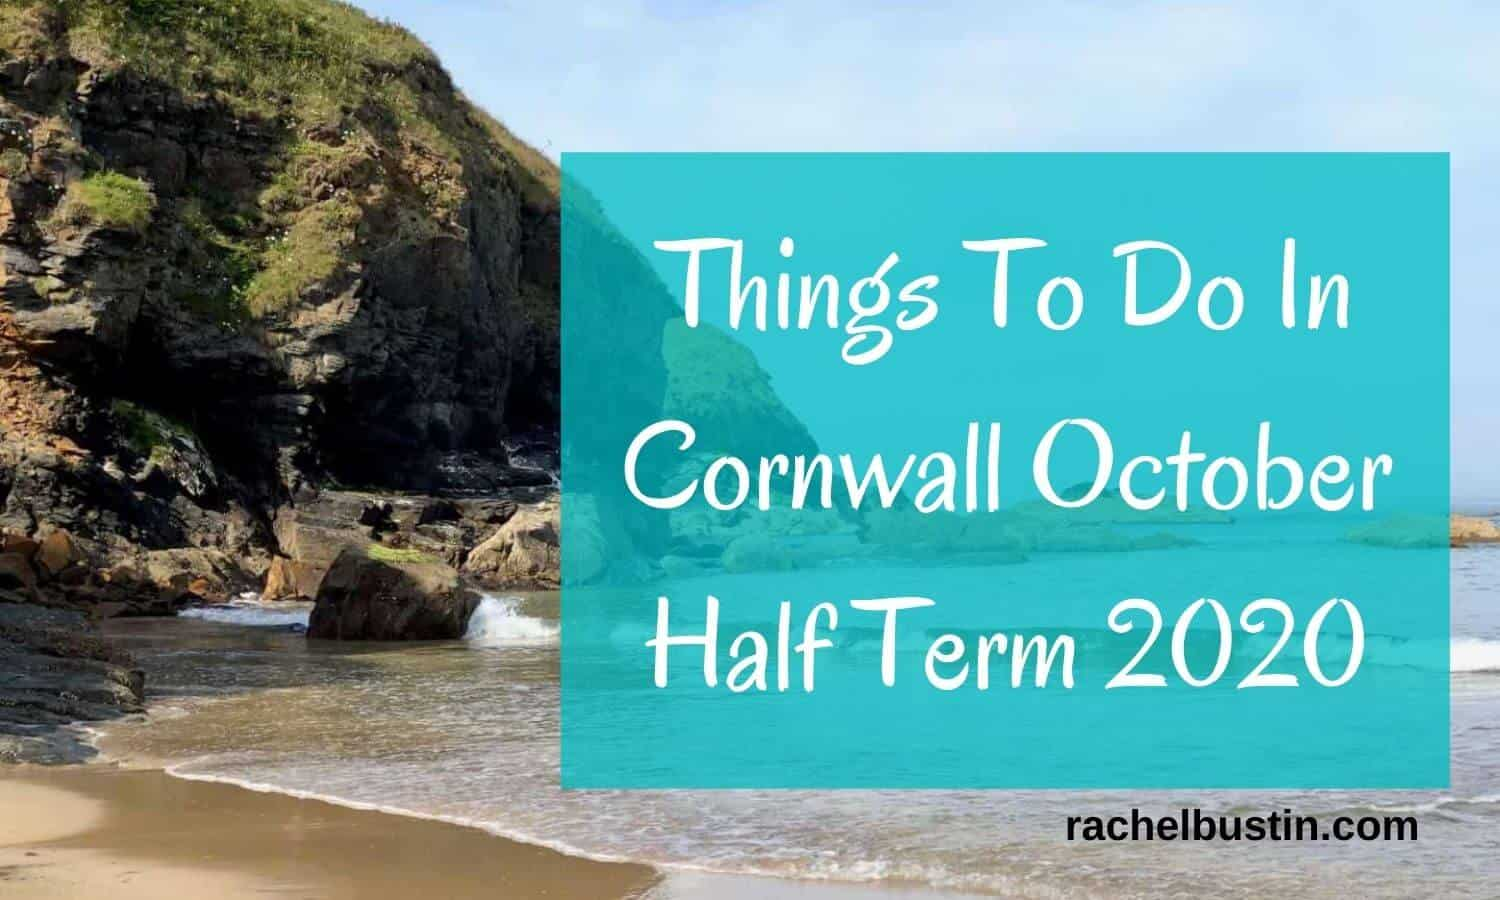 Things To Do In Cornwall October Half Term 2020